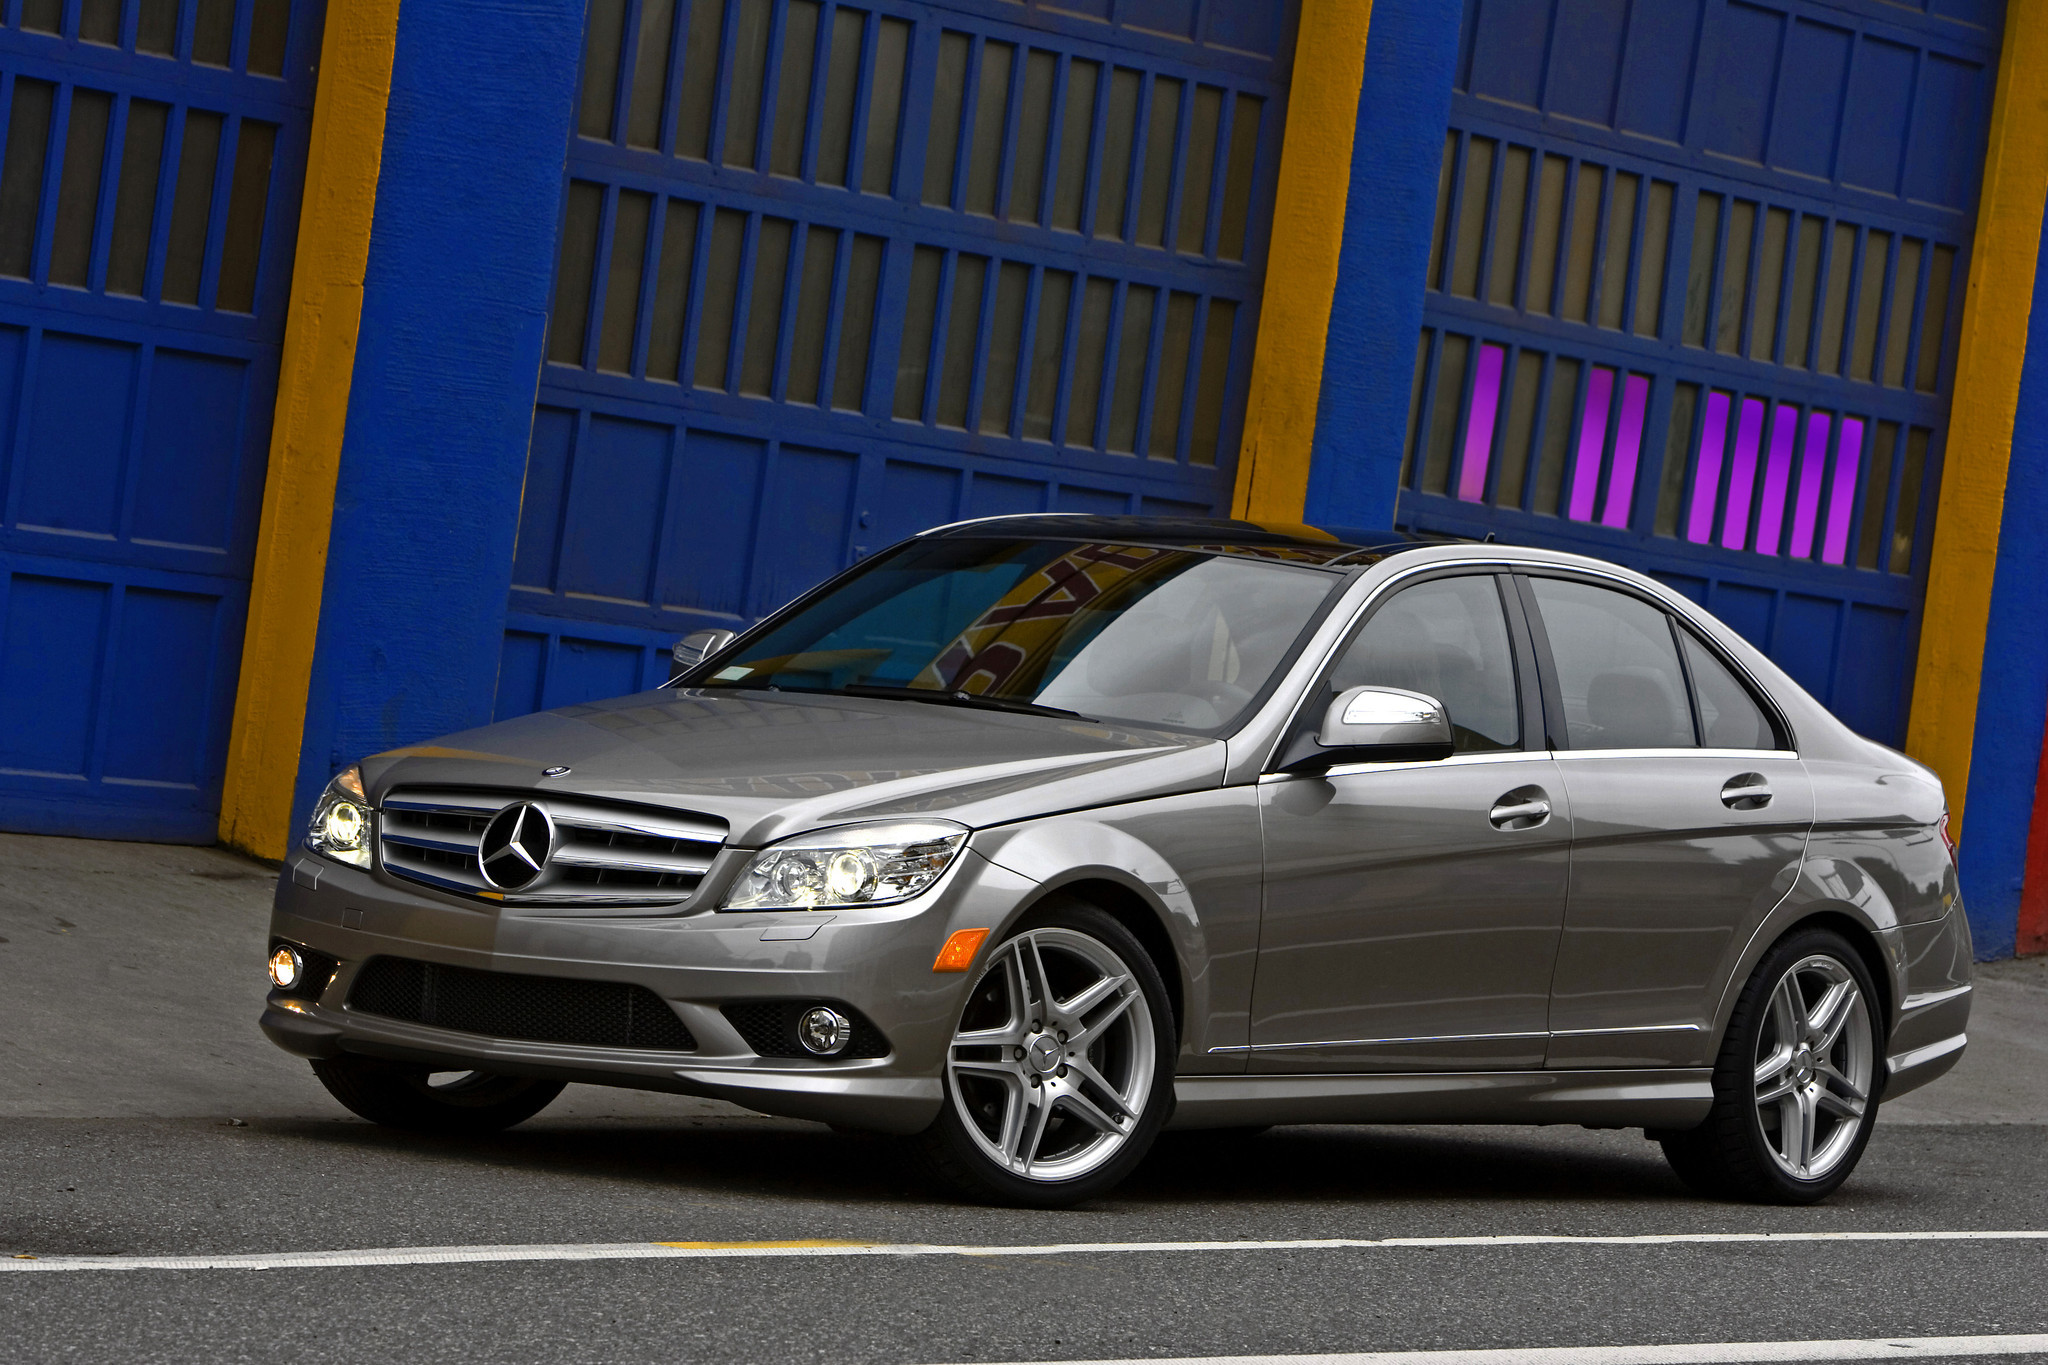 Mercedes benz recalls 284 000 c class cars in u s and for Mercedes benz c class recall